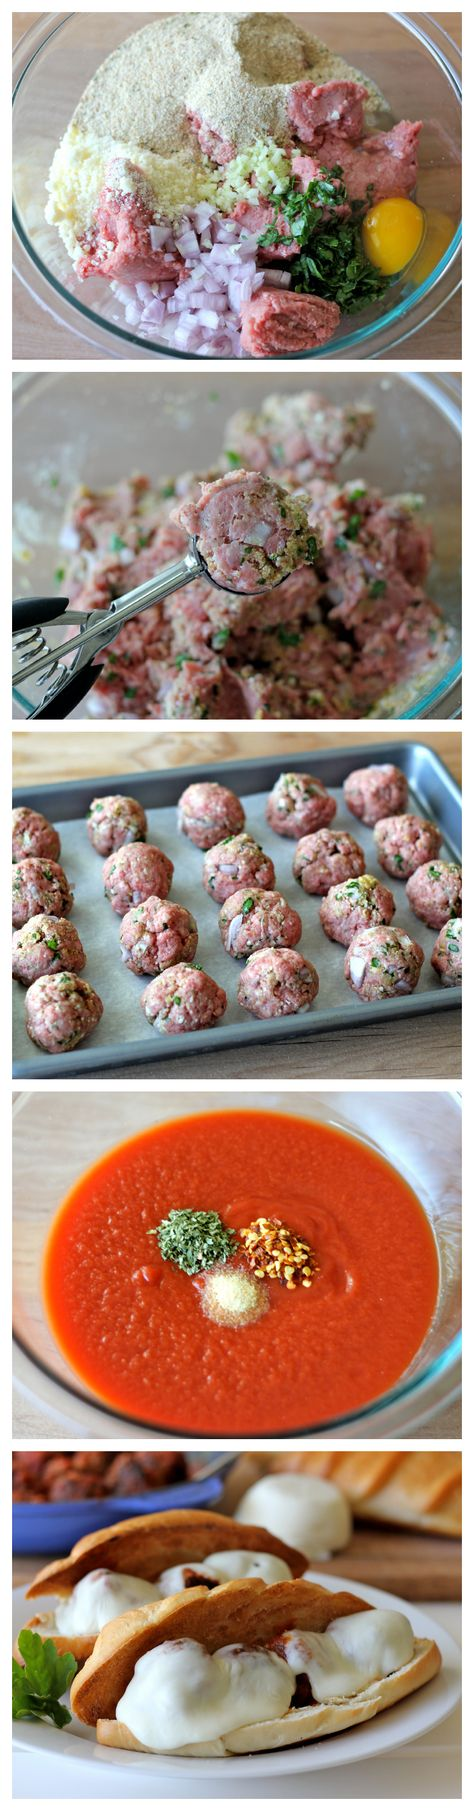 Italian Meatball Sandwiches - The best meatball sub that you can make right at home with an easy homemade marinara!